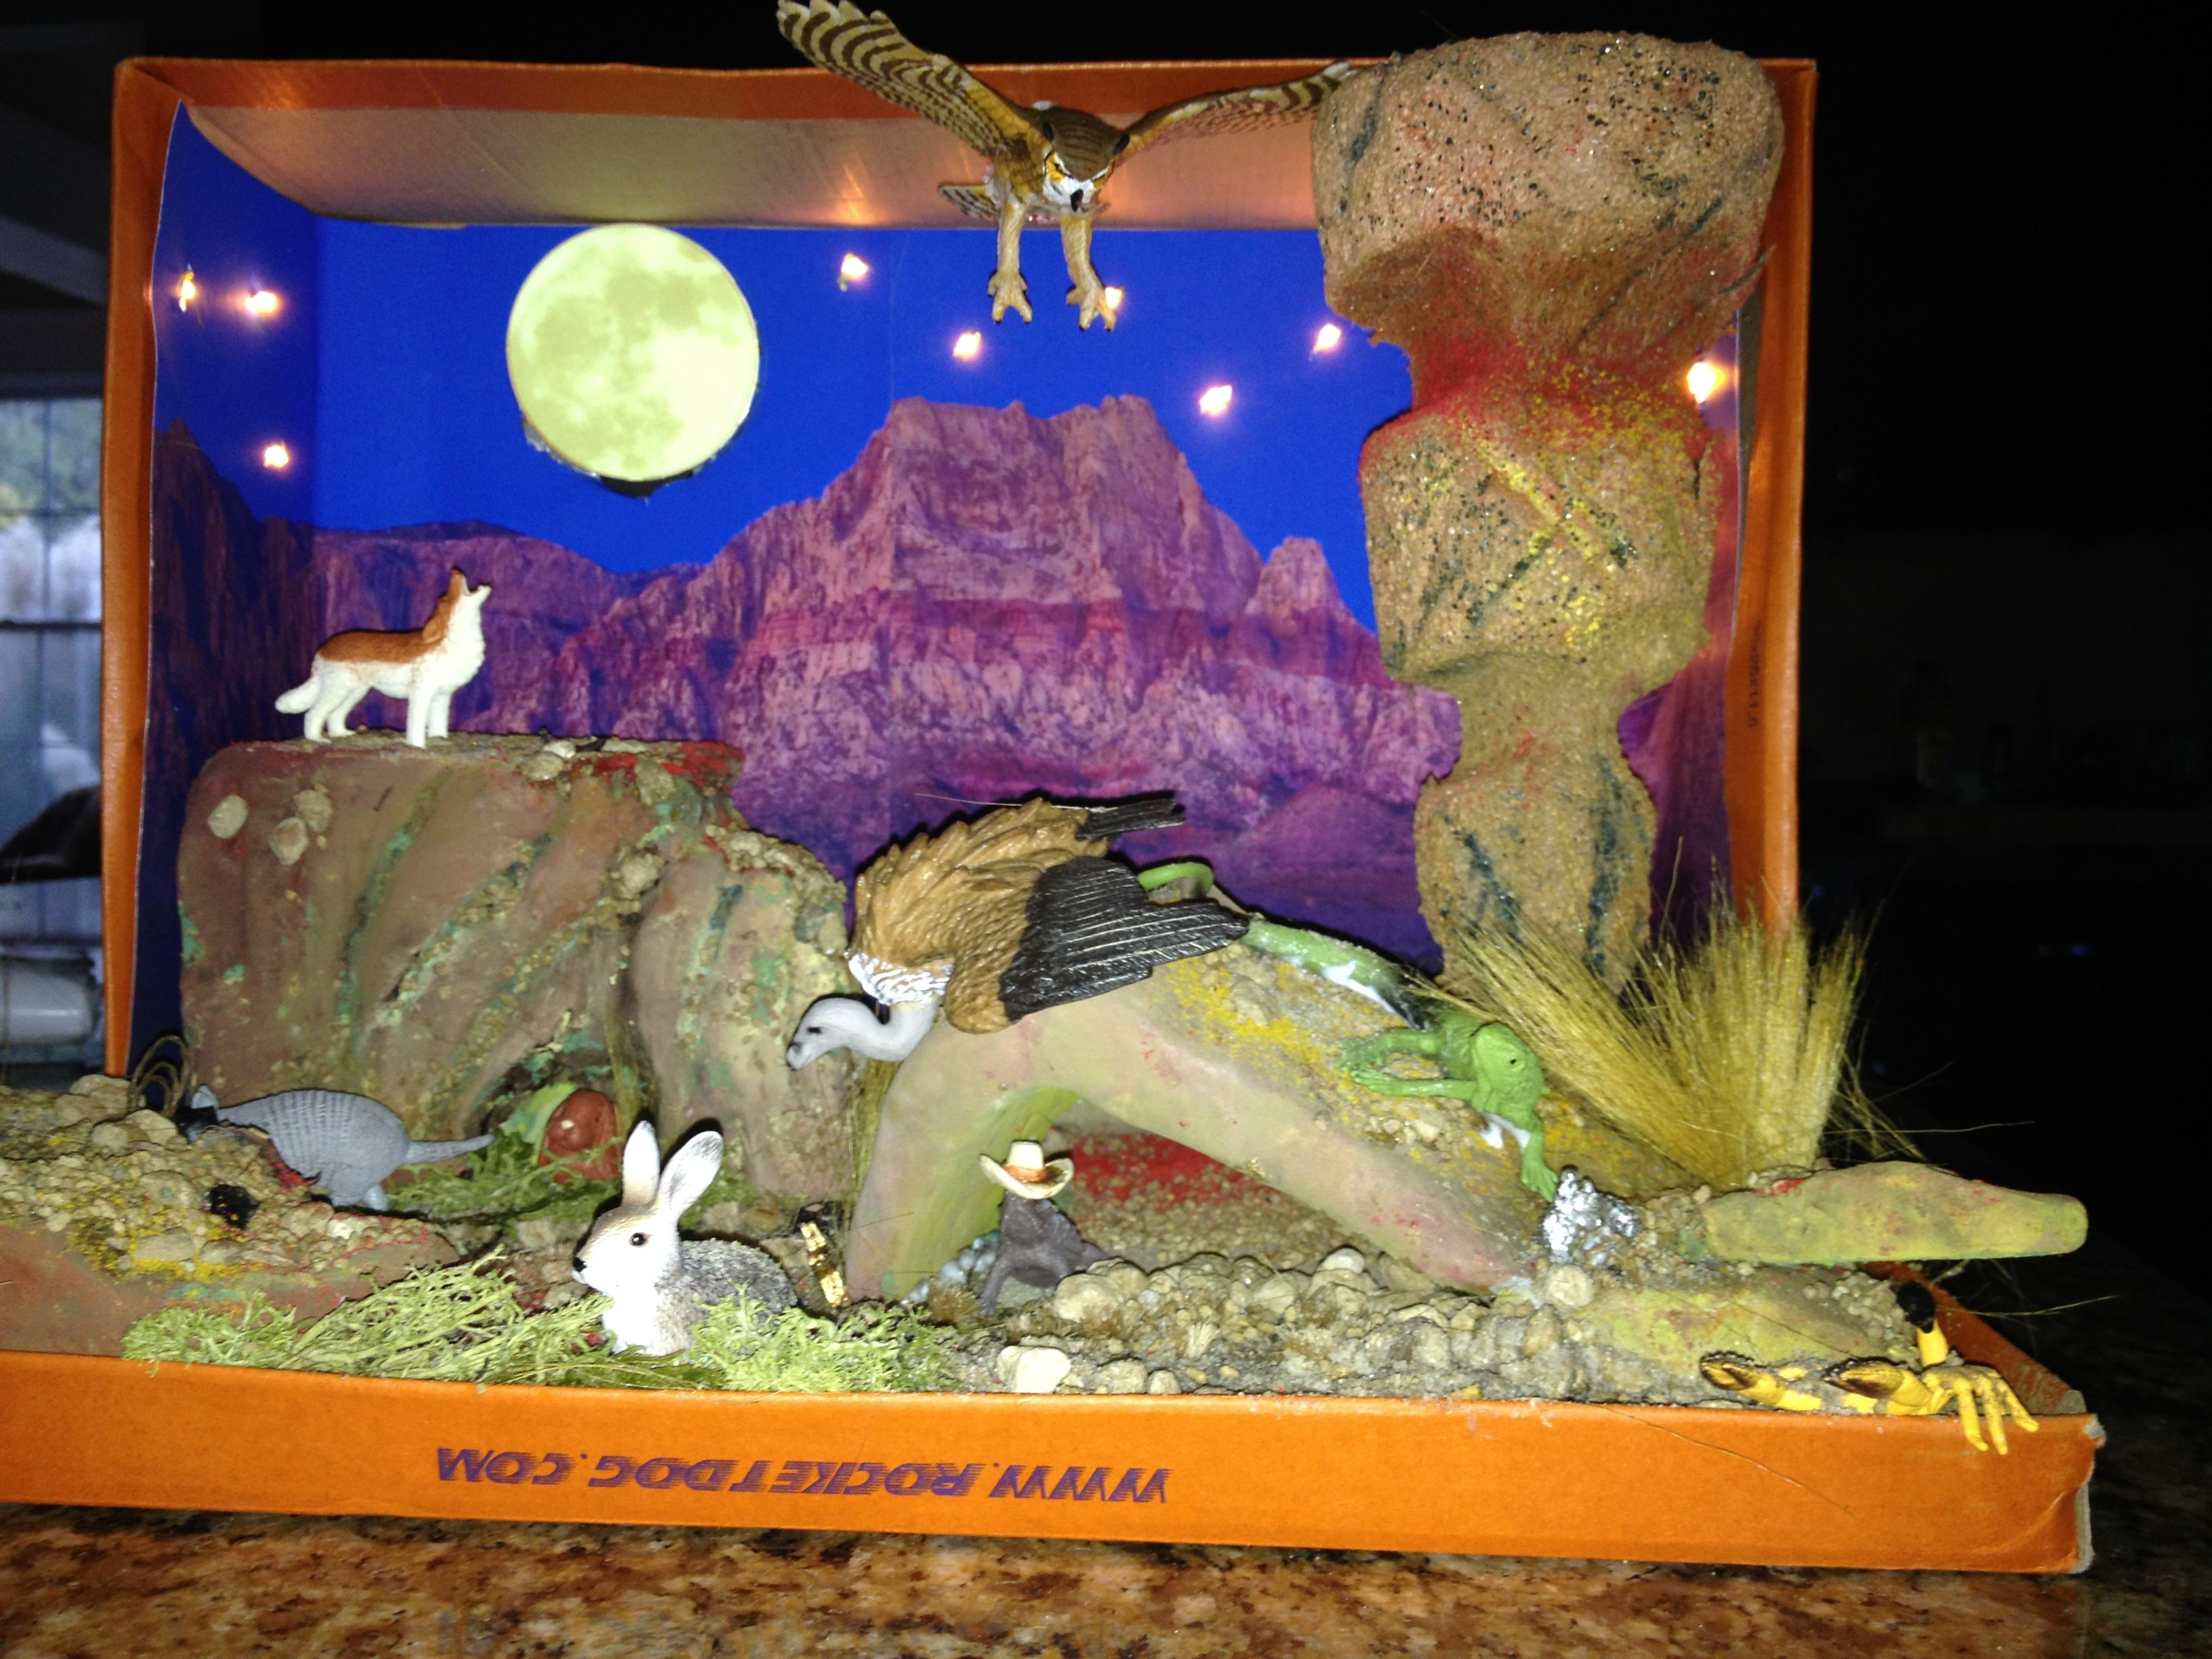 Shoebox Desert Diorama made for 3rd grade project | Desert